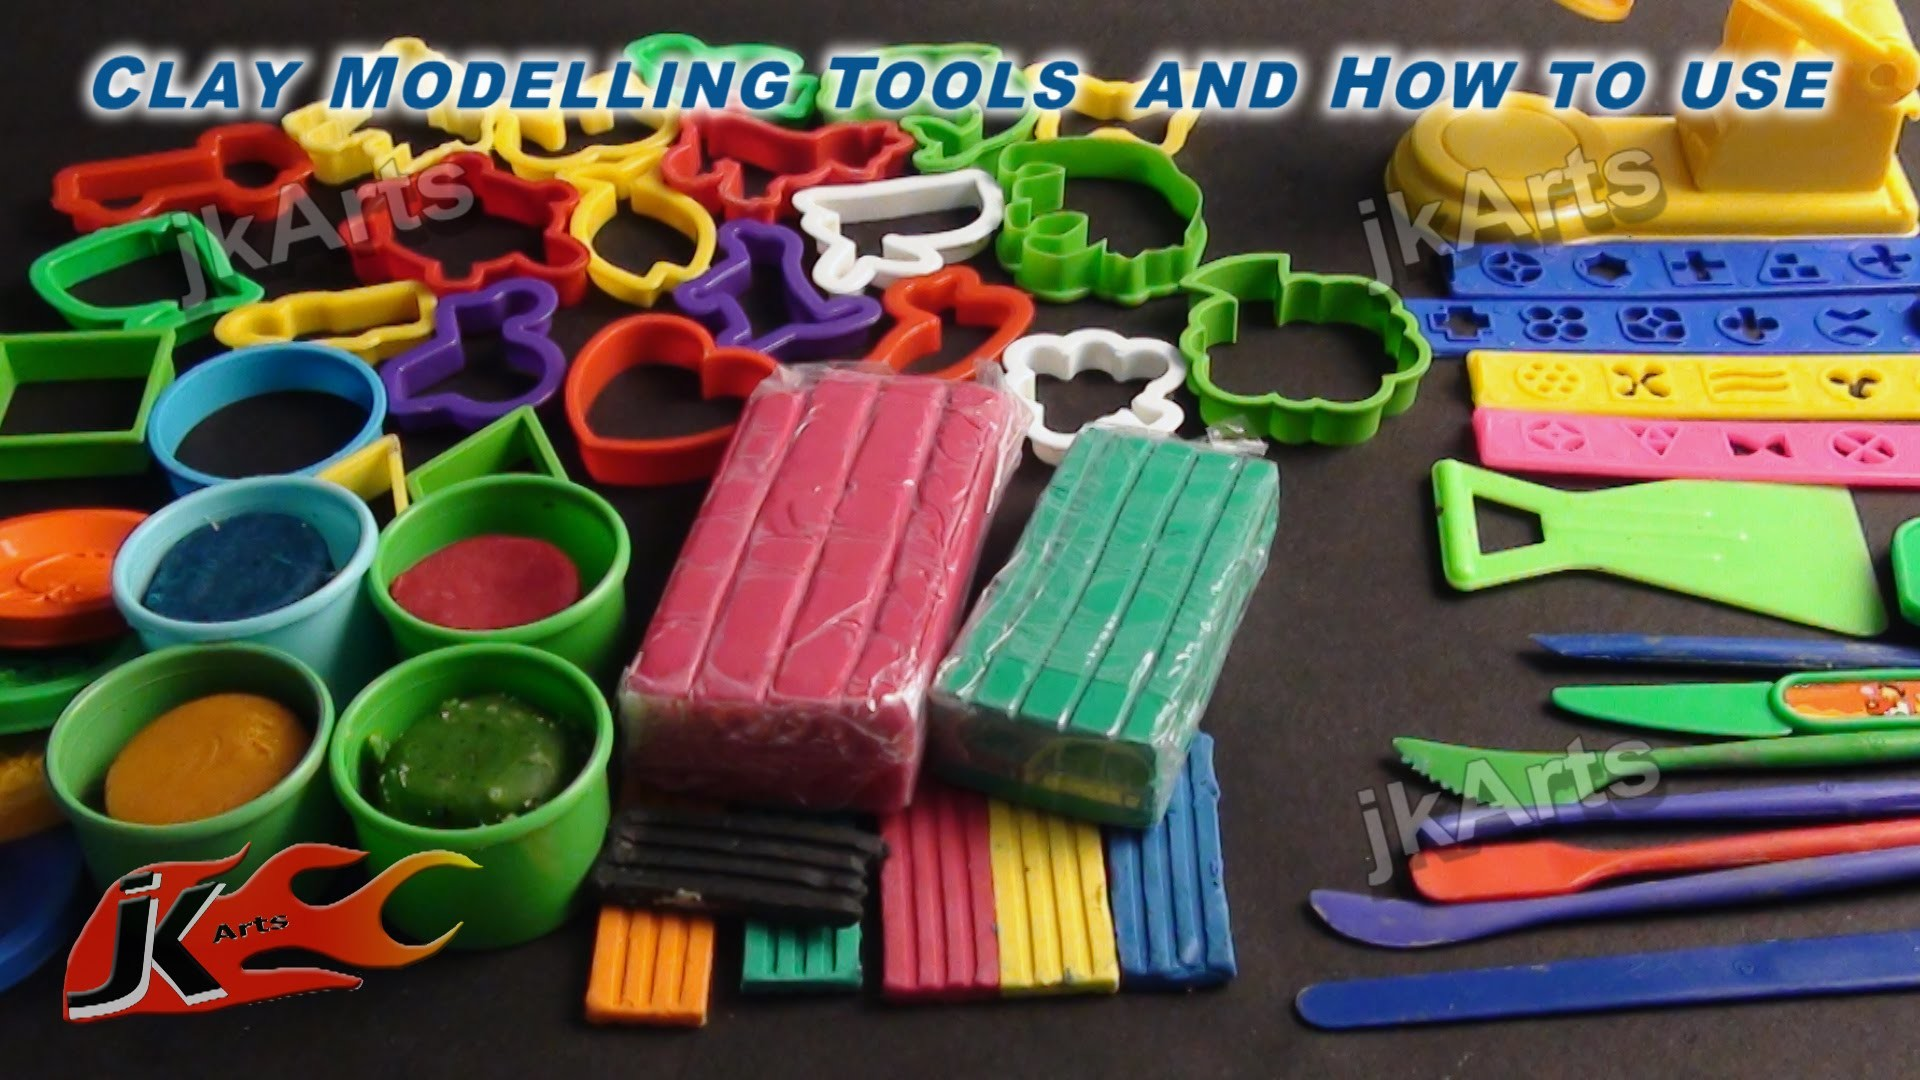 DIY Clay Modelling Tools for Kids and How to use -  JK Arts 347